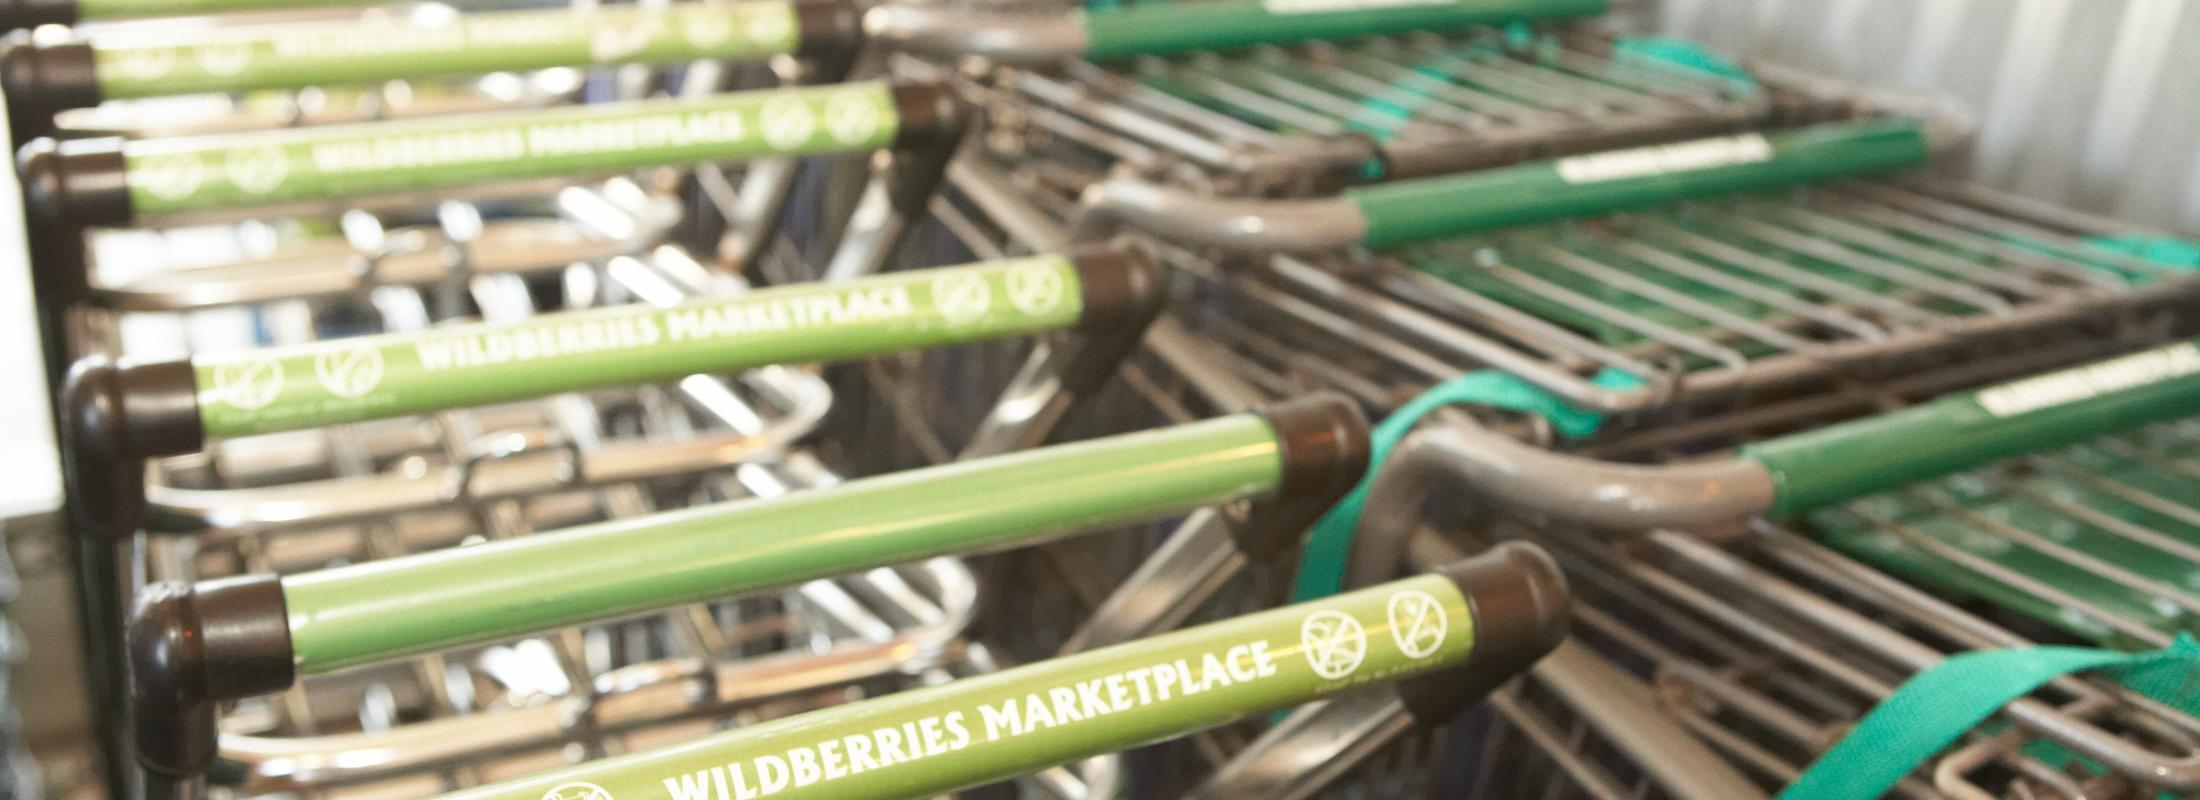 Wildberries Shopping Carts